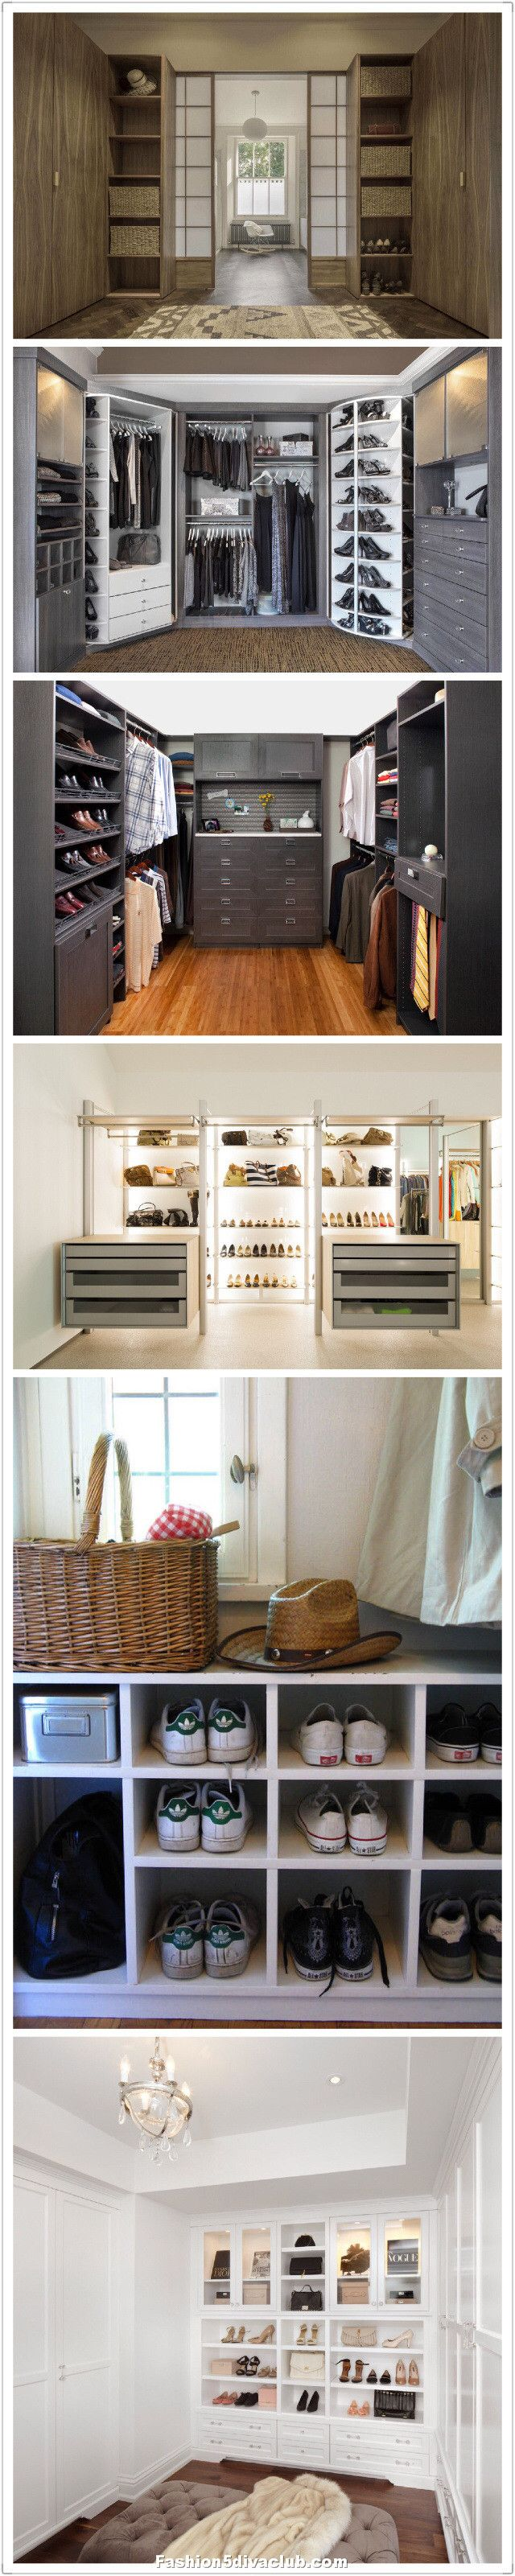 Wall fitted wardrobe sliding door designs decor references - Check More Wardrobe Designs In Fashion5divaclub Com You Will Find Designs For Wardrobe With Wardrobes With Sliding Doorswardrobe Design